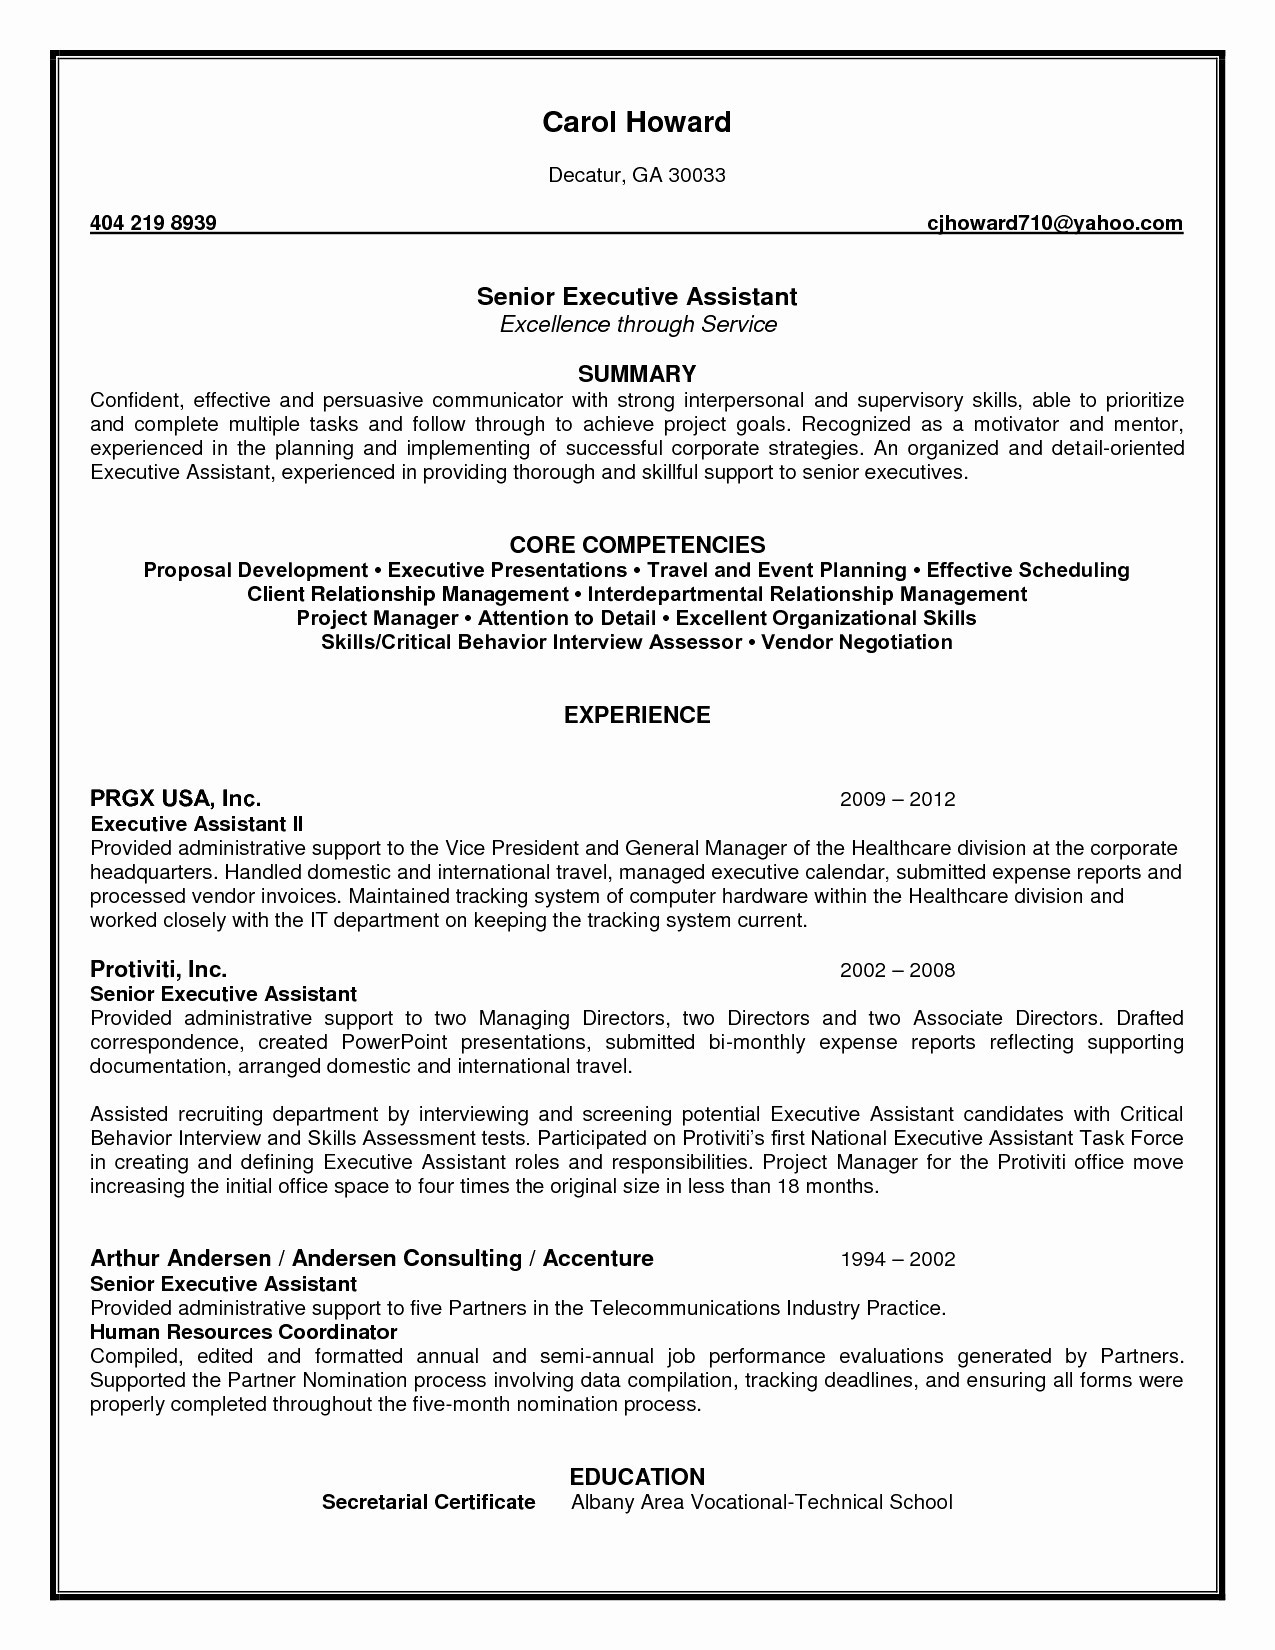 executive administrative assistant resume Collection-Executive assistant Resumes Unique Resume Template Executive assistant Beautiful Ssis Resume 0d Executive assistant Resumes 11-k